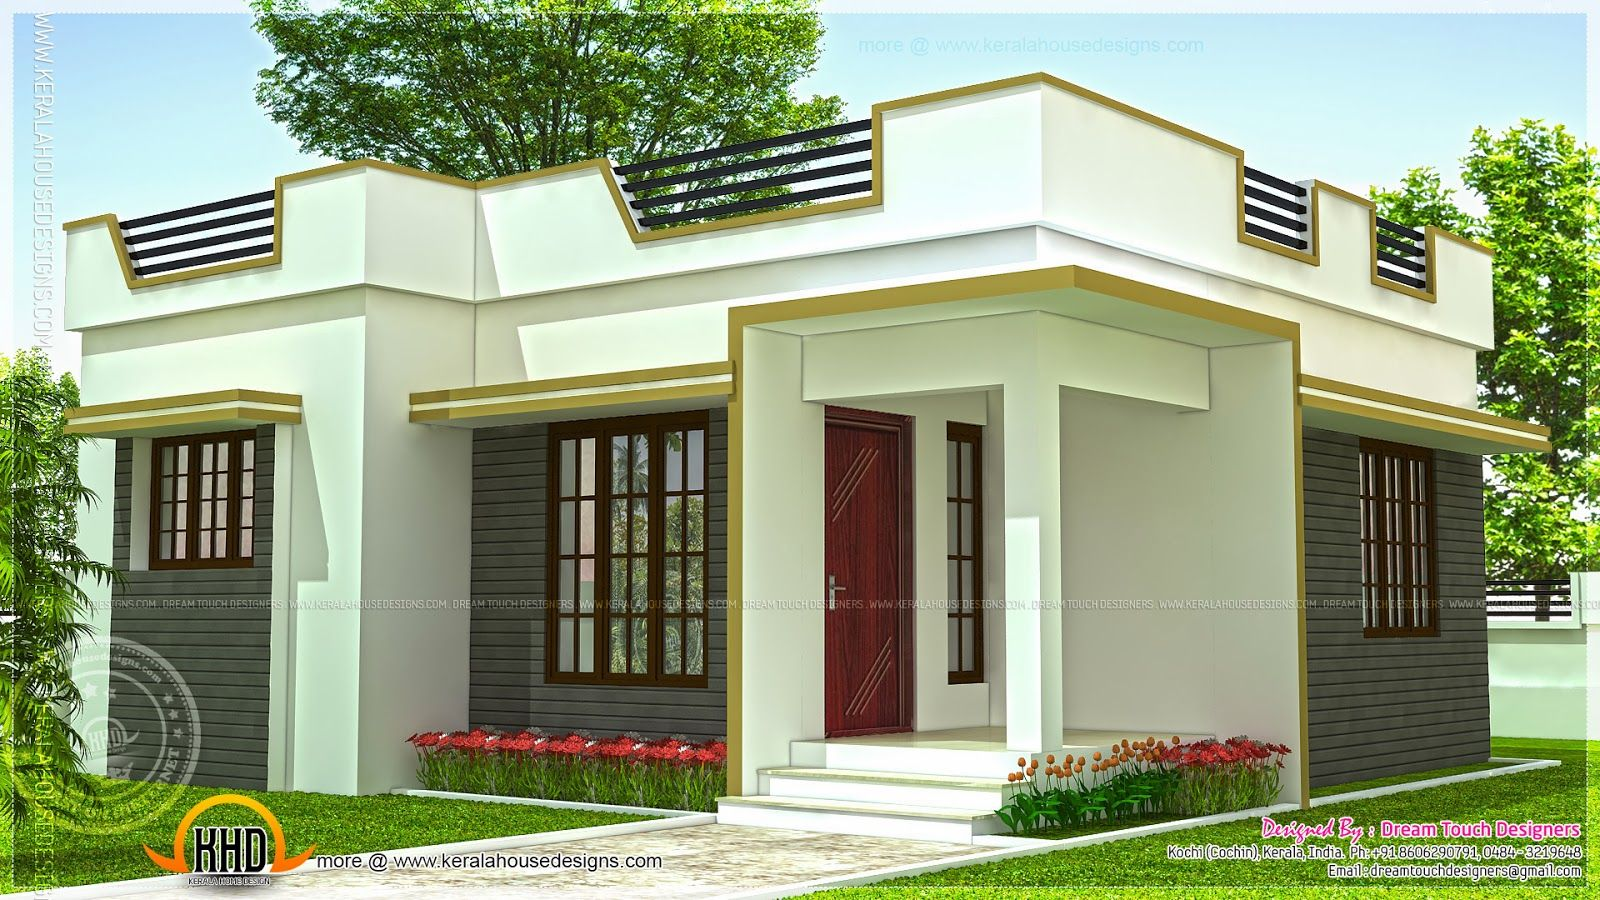 Lately 21 Small House Design Kerala Small House Kerala Jpg 1600 900 House Roof Design Small House Roof Design Small House Design Kerala